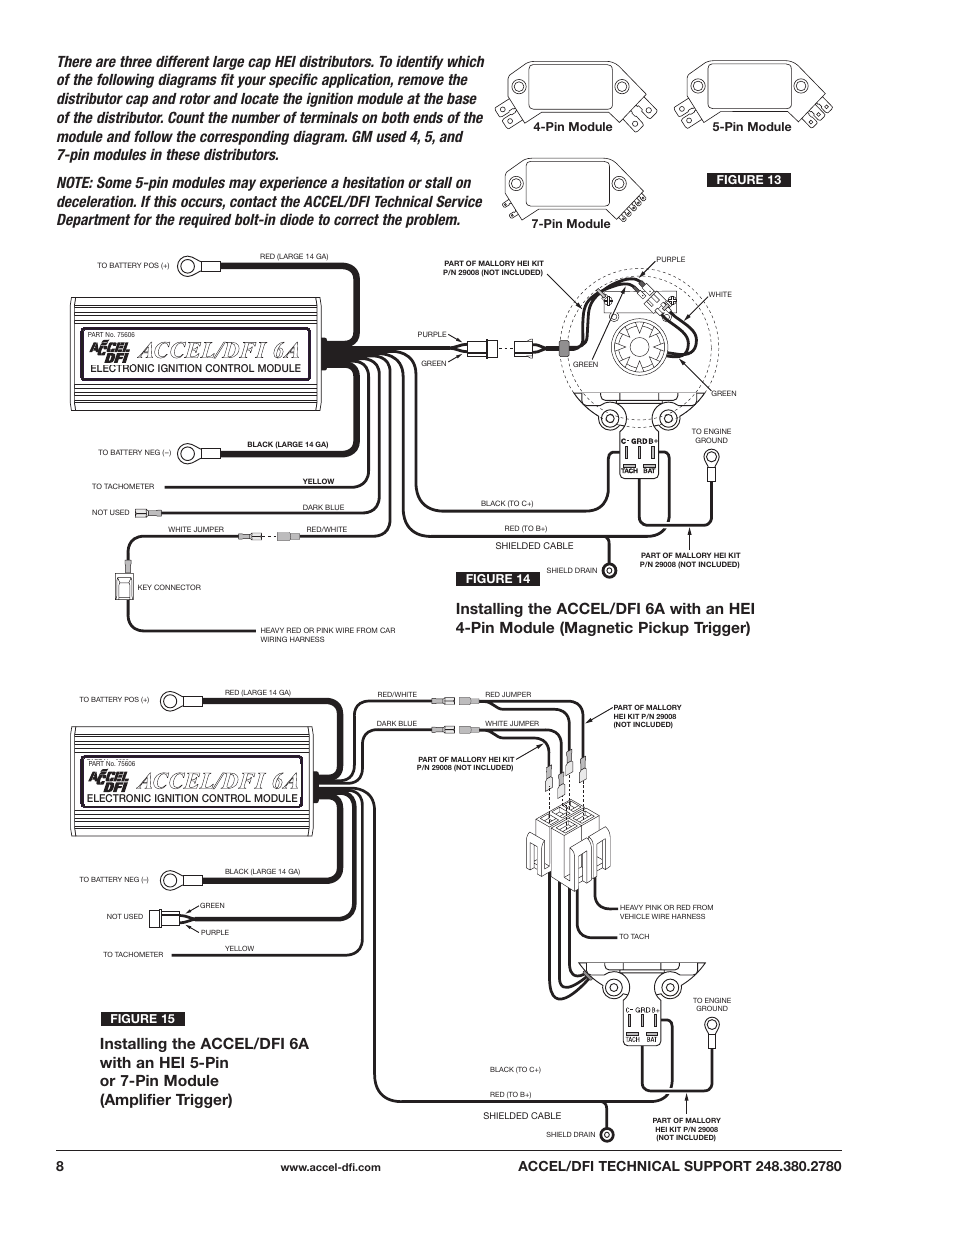 accel control module wiring diagram ignition control module wiring diagram gm hei distributor module wiring diagram free download